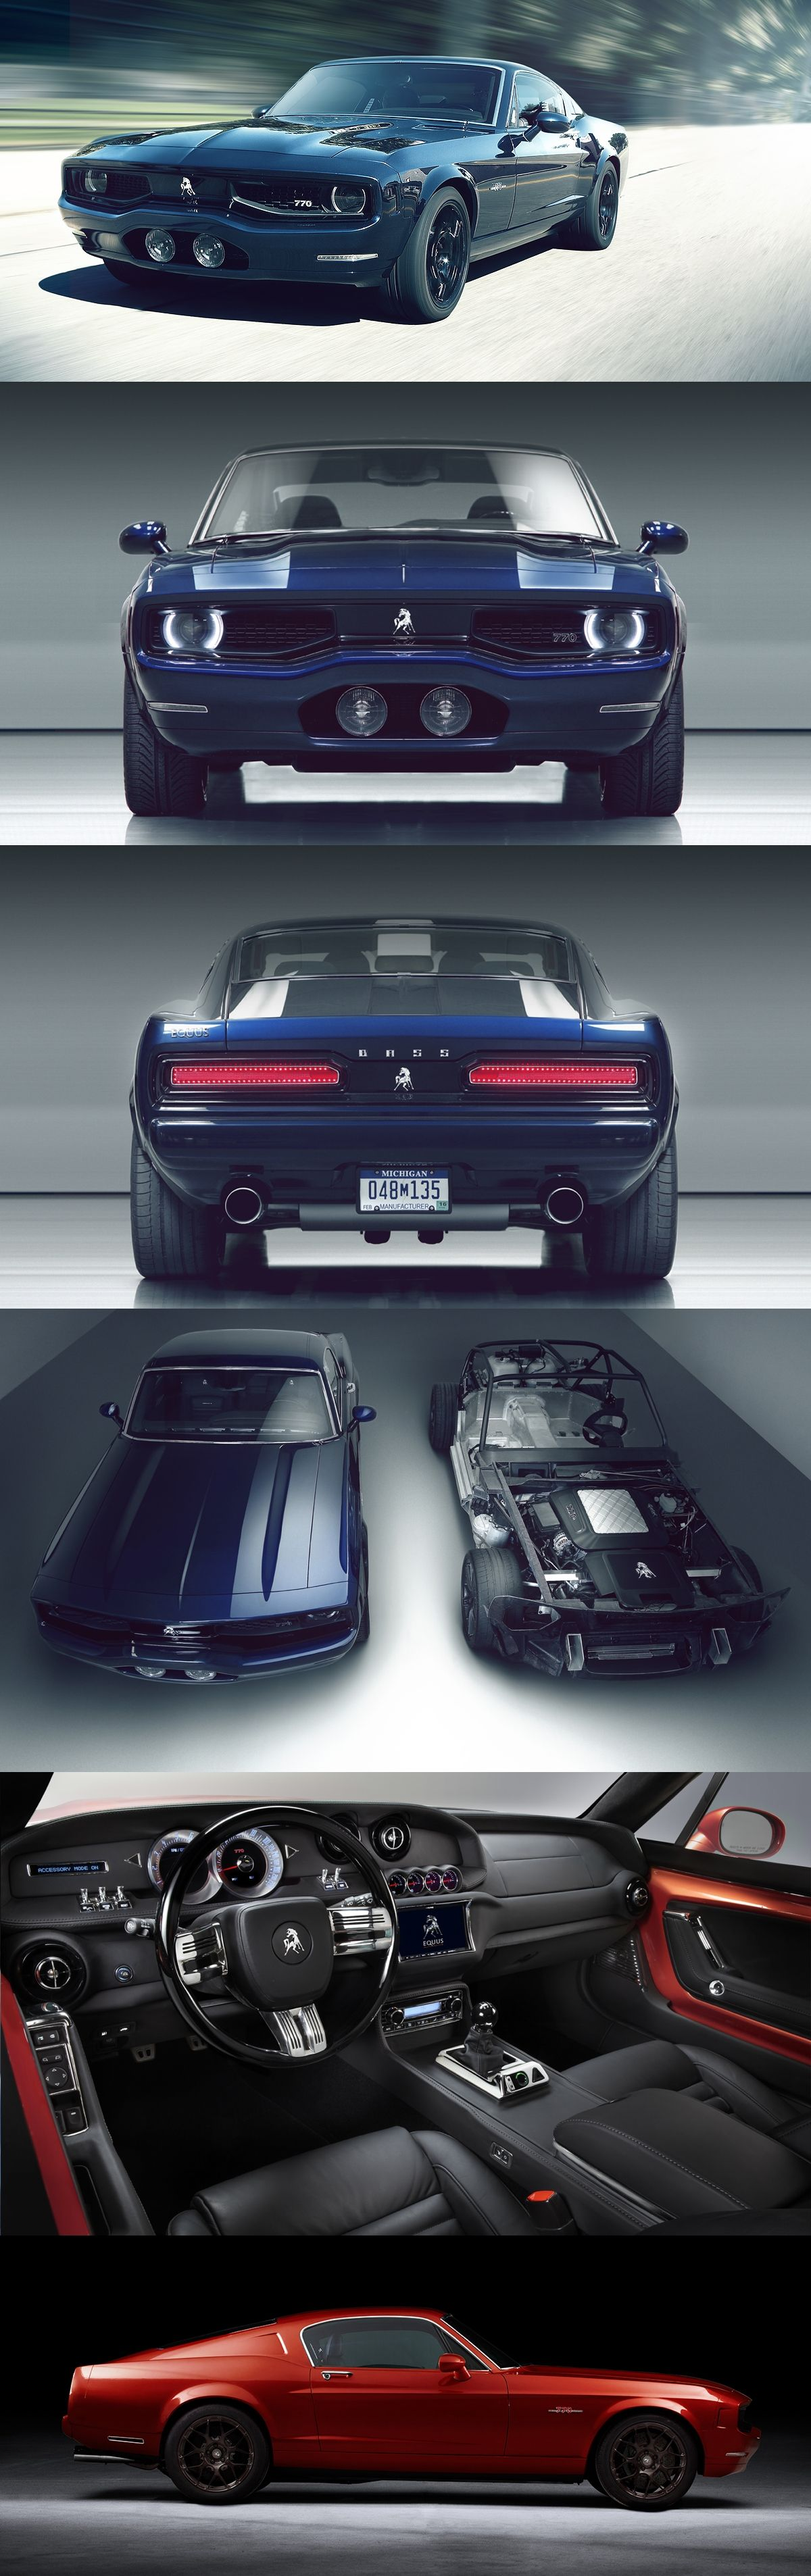 Equus Bass 770 For Sale >> Equus Bass 770: The $250,000 Muscle Car For The 21st Century (VIDEO   Brrrrrmmmm :)   Muscle ...